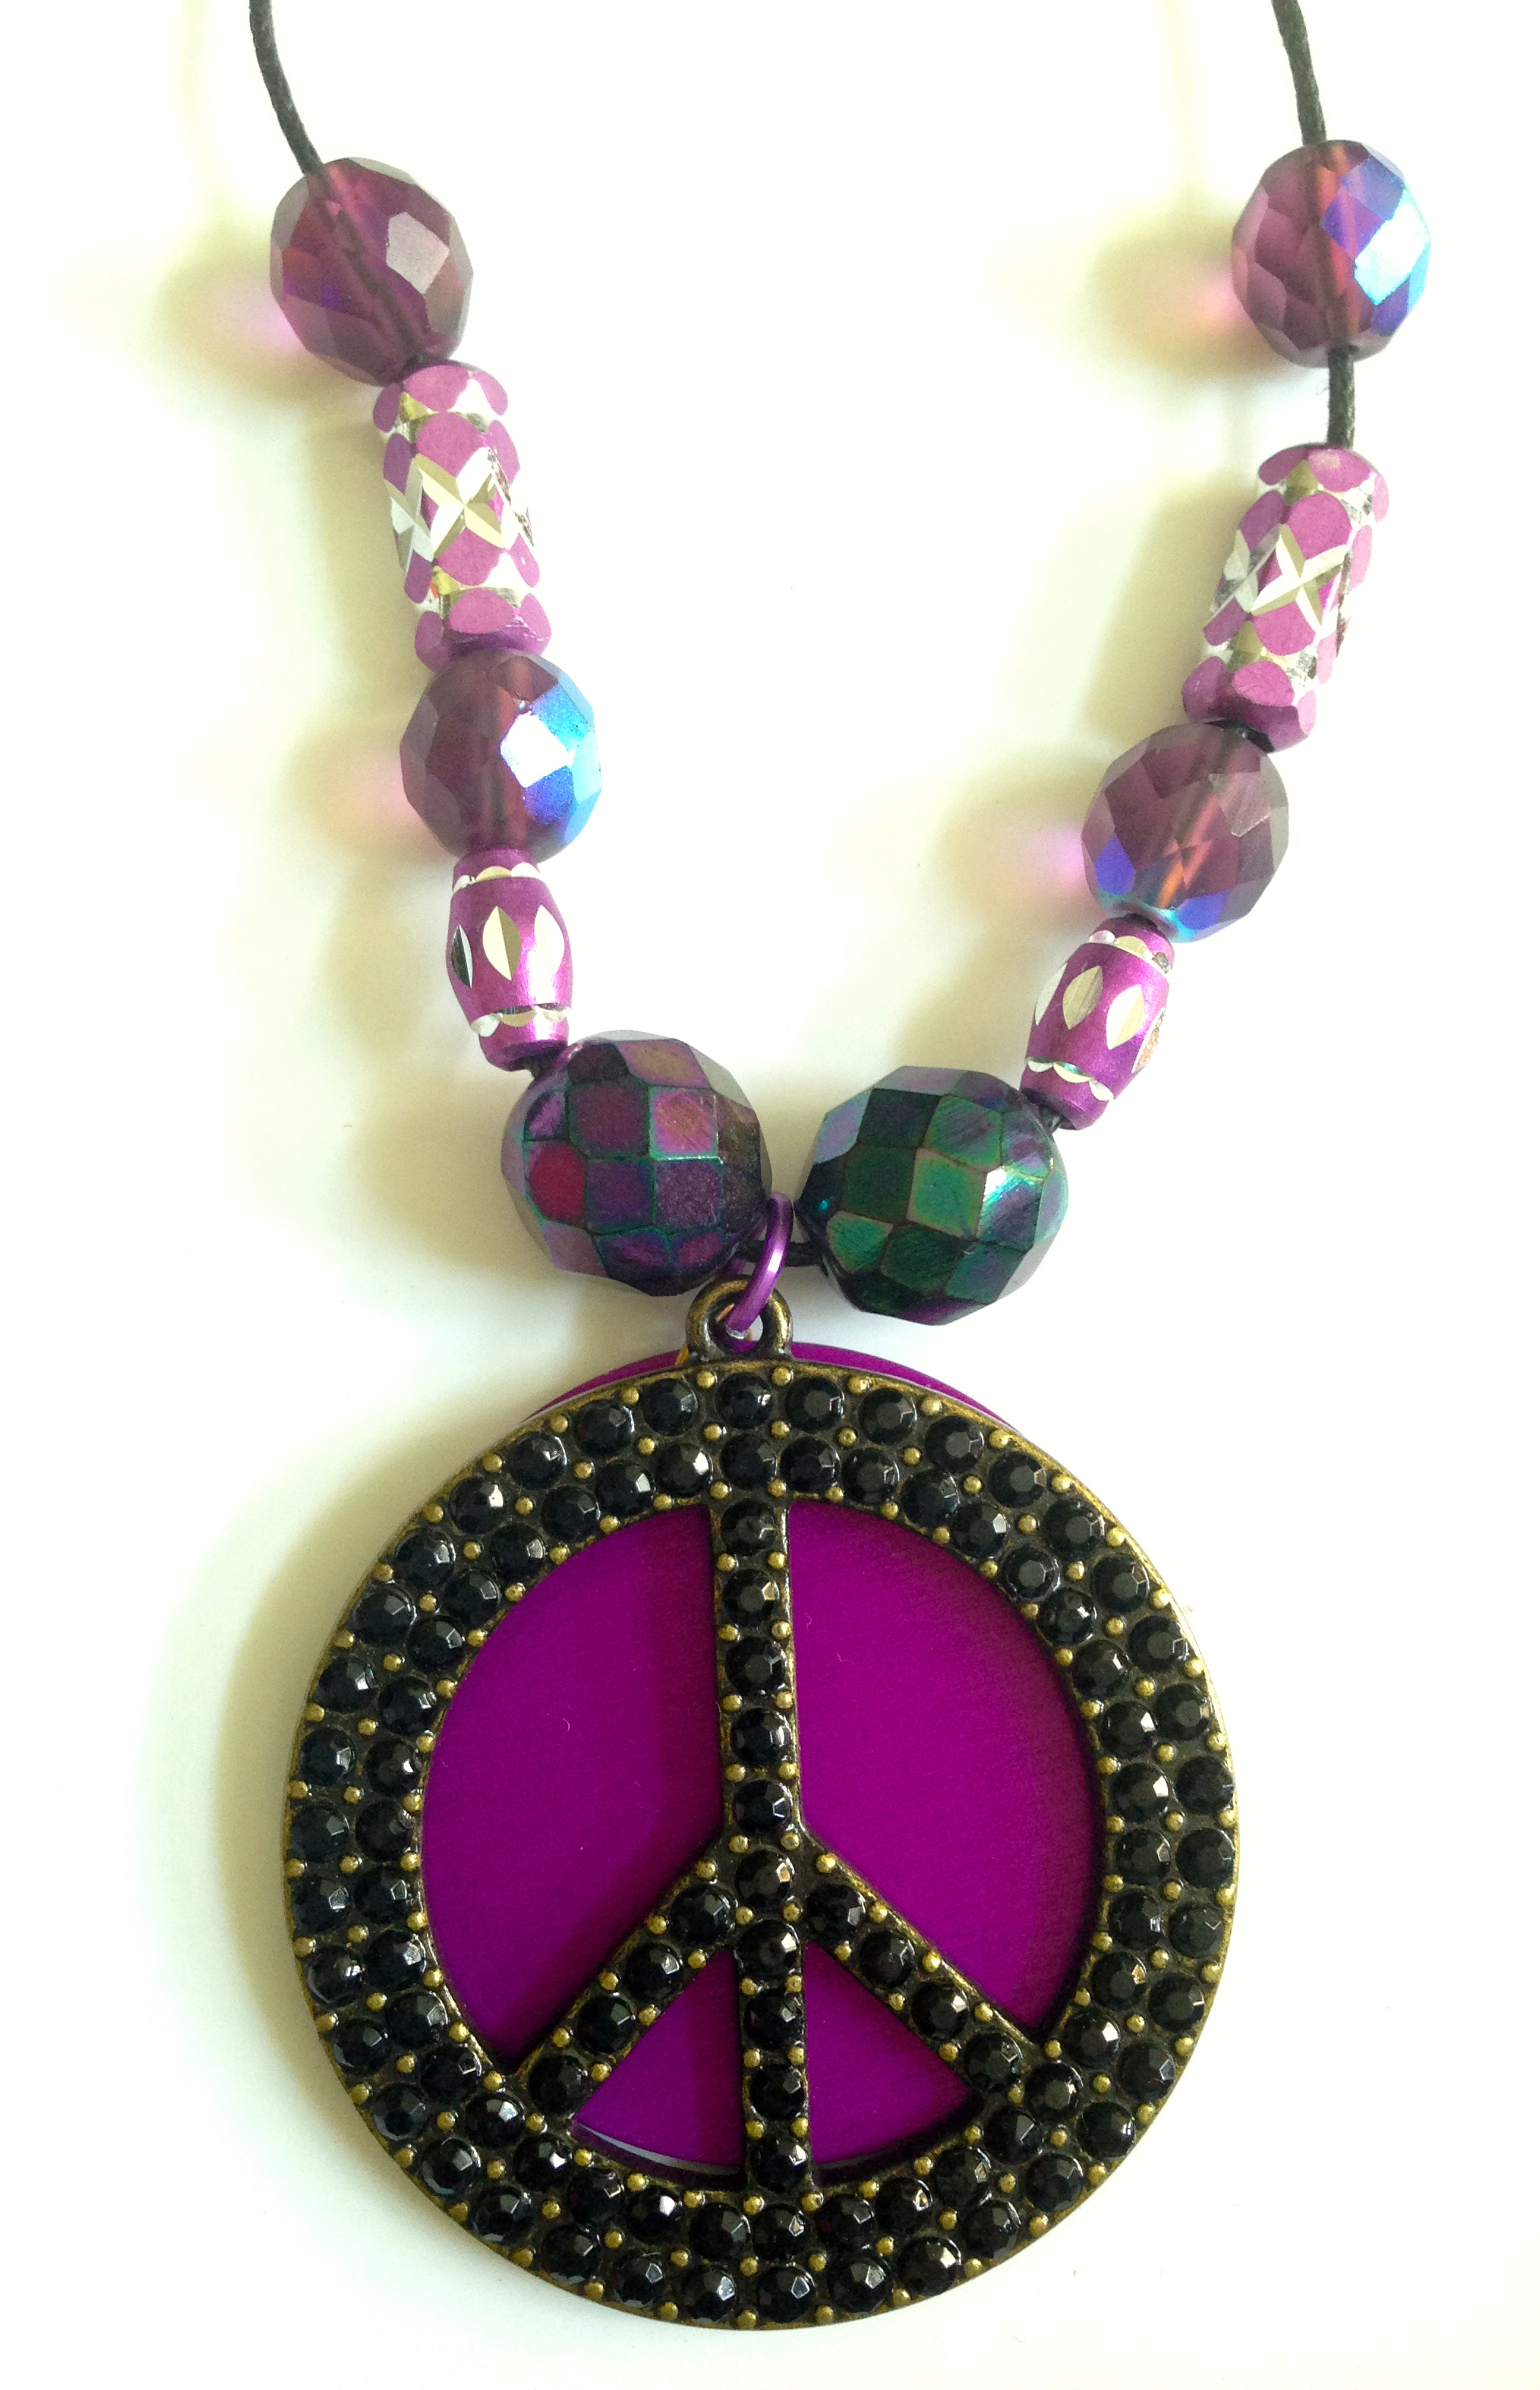 Only-One Rhinestone Peace Sign with large Energy Disk